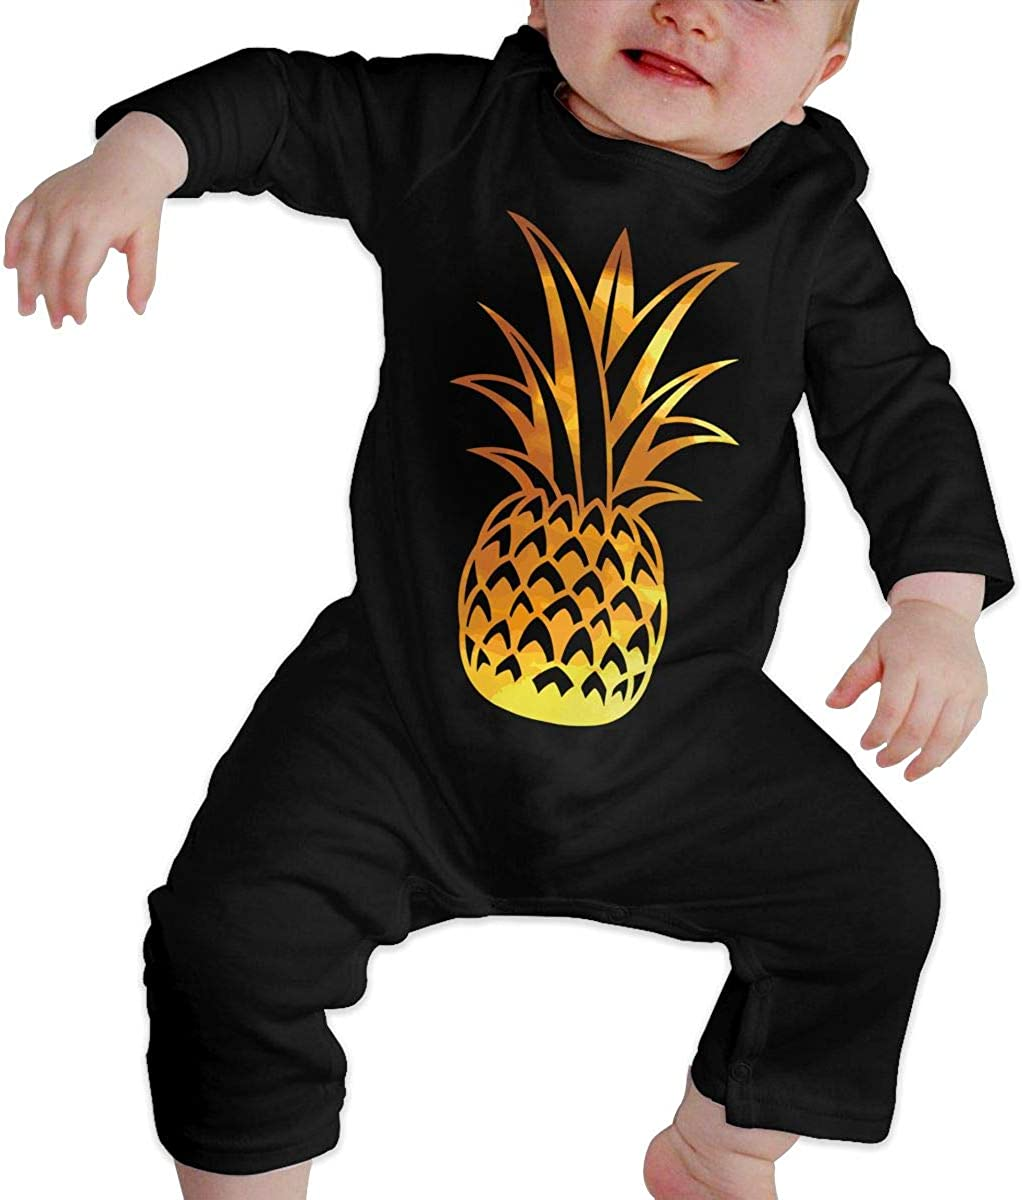 Pineapple Hawaii Organic One-Piece Bodysuits Coverall Outfits BKNGDG8Q Unisex Baby Romper Jumpsuit